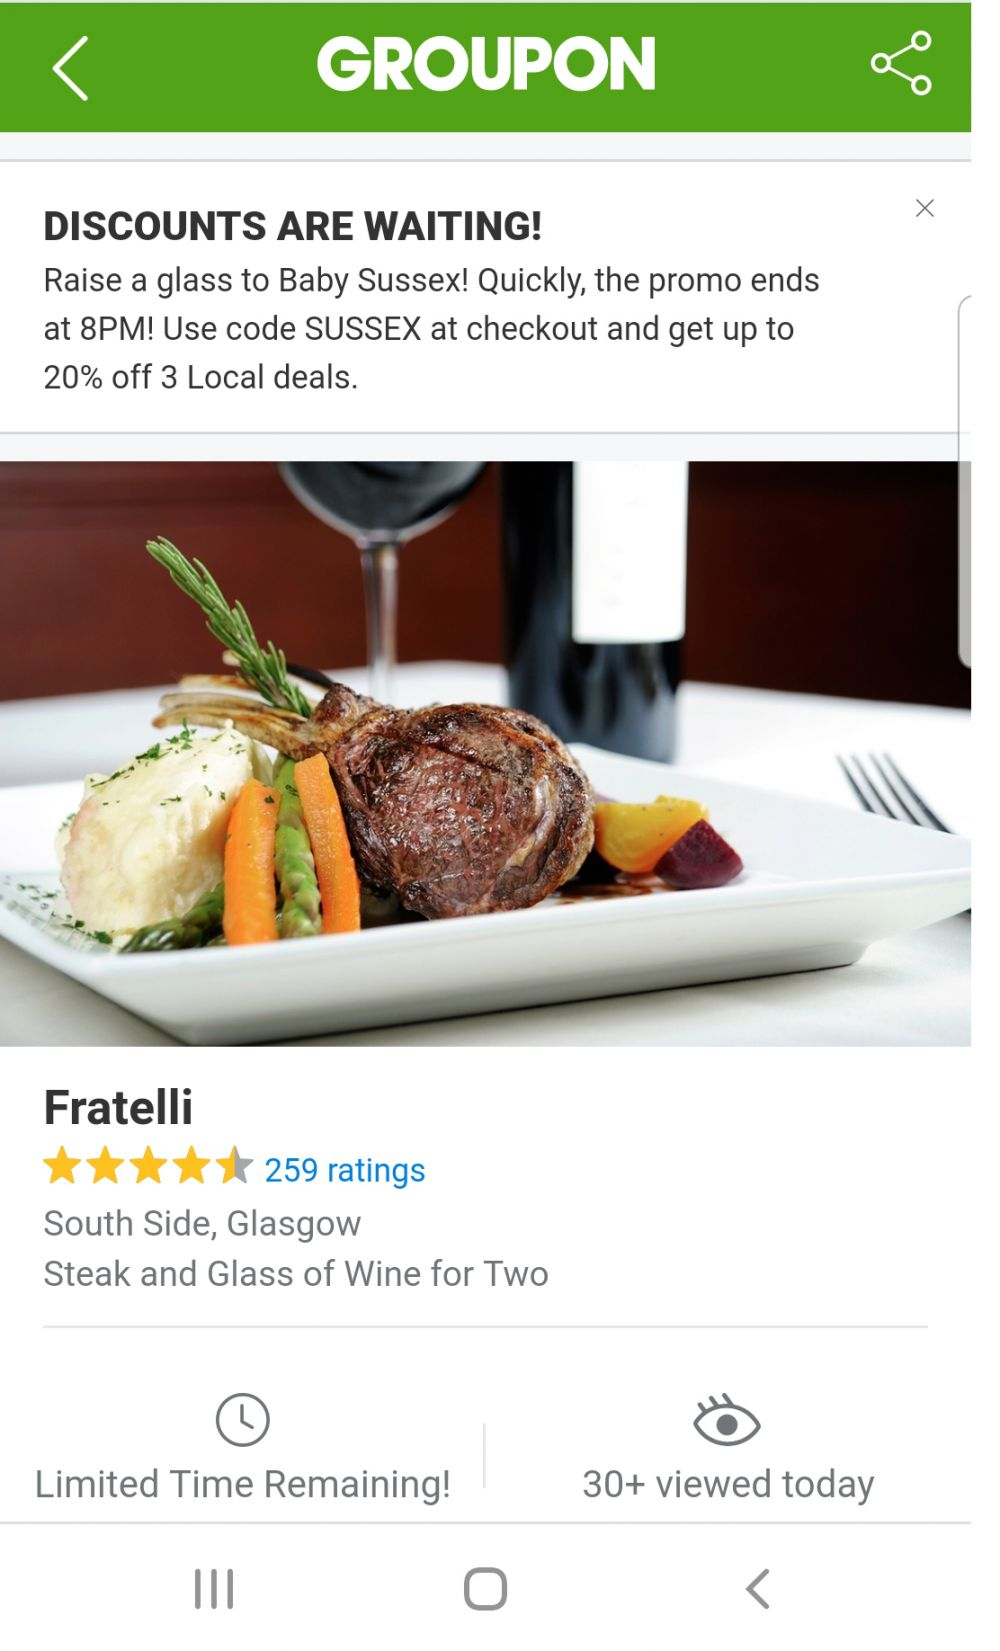 Linking to Fratelli Groupon Page